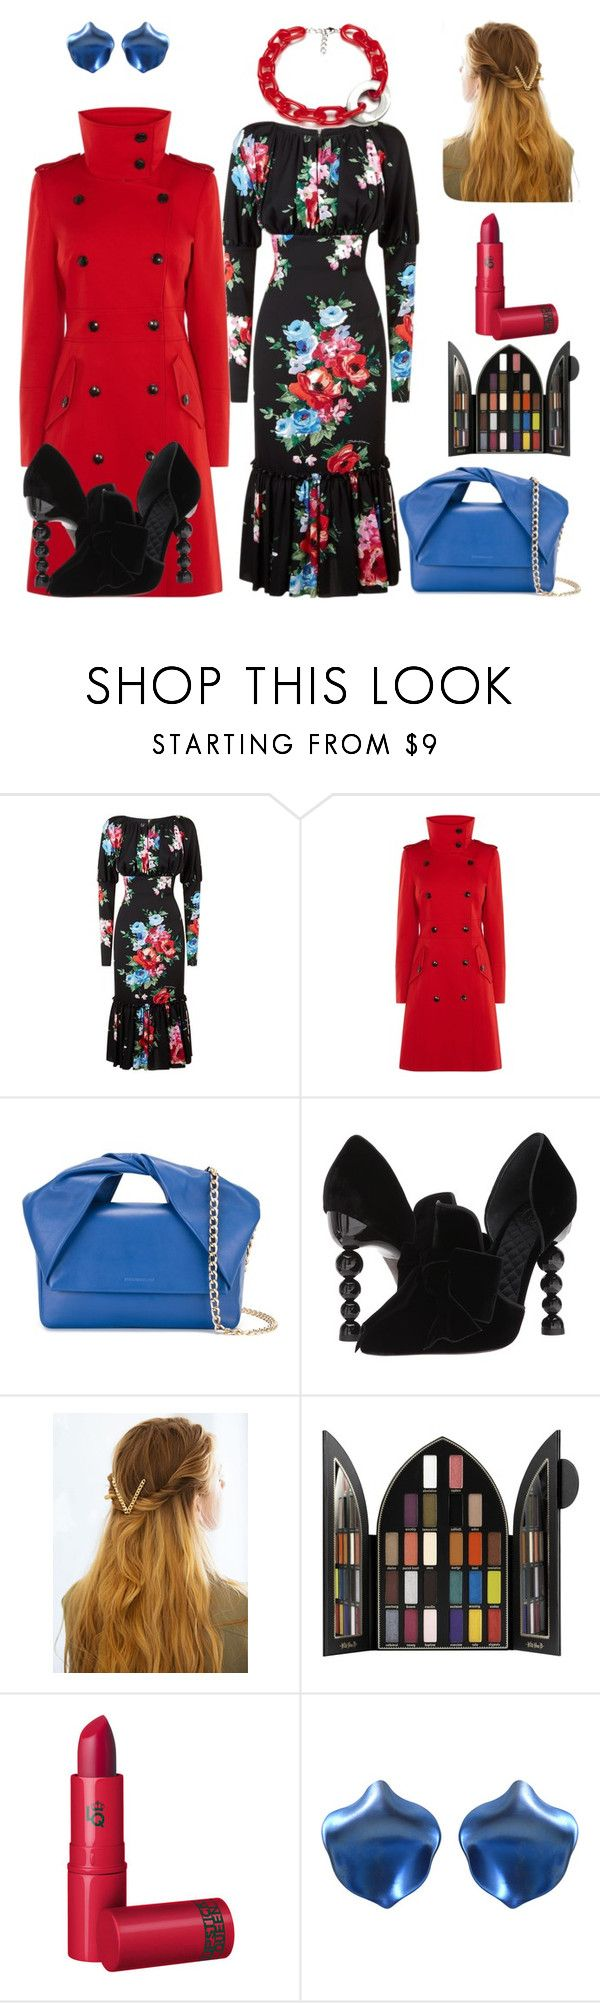 """""""Winter dress"""" by audreybrookezaring ❤ liked on Polyvore featuring Dolce&Gabbana, Karen Millen, J.W. Anderson, Tory Burch, WithChic, Kat Von D, Lipstick Queen and Slater Zorn"""